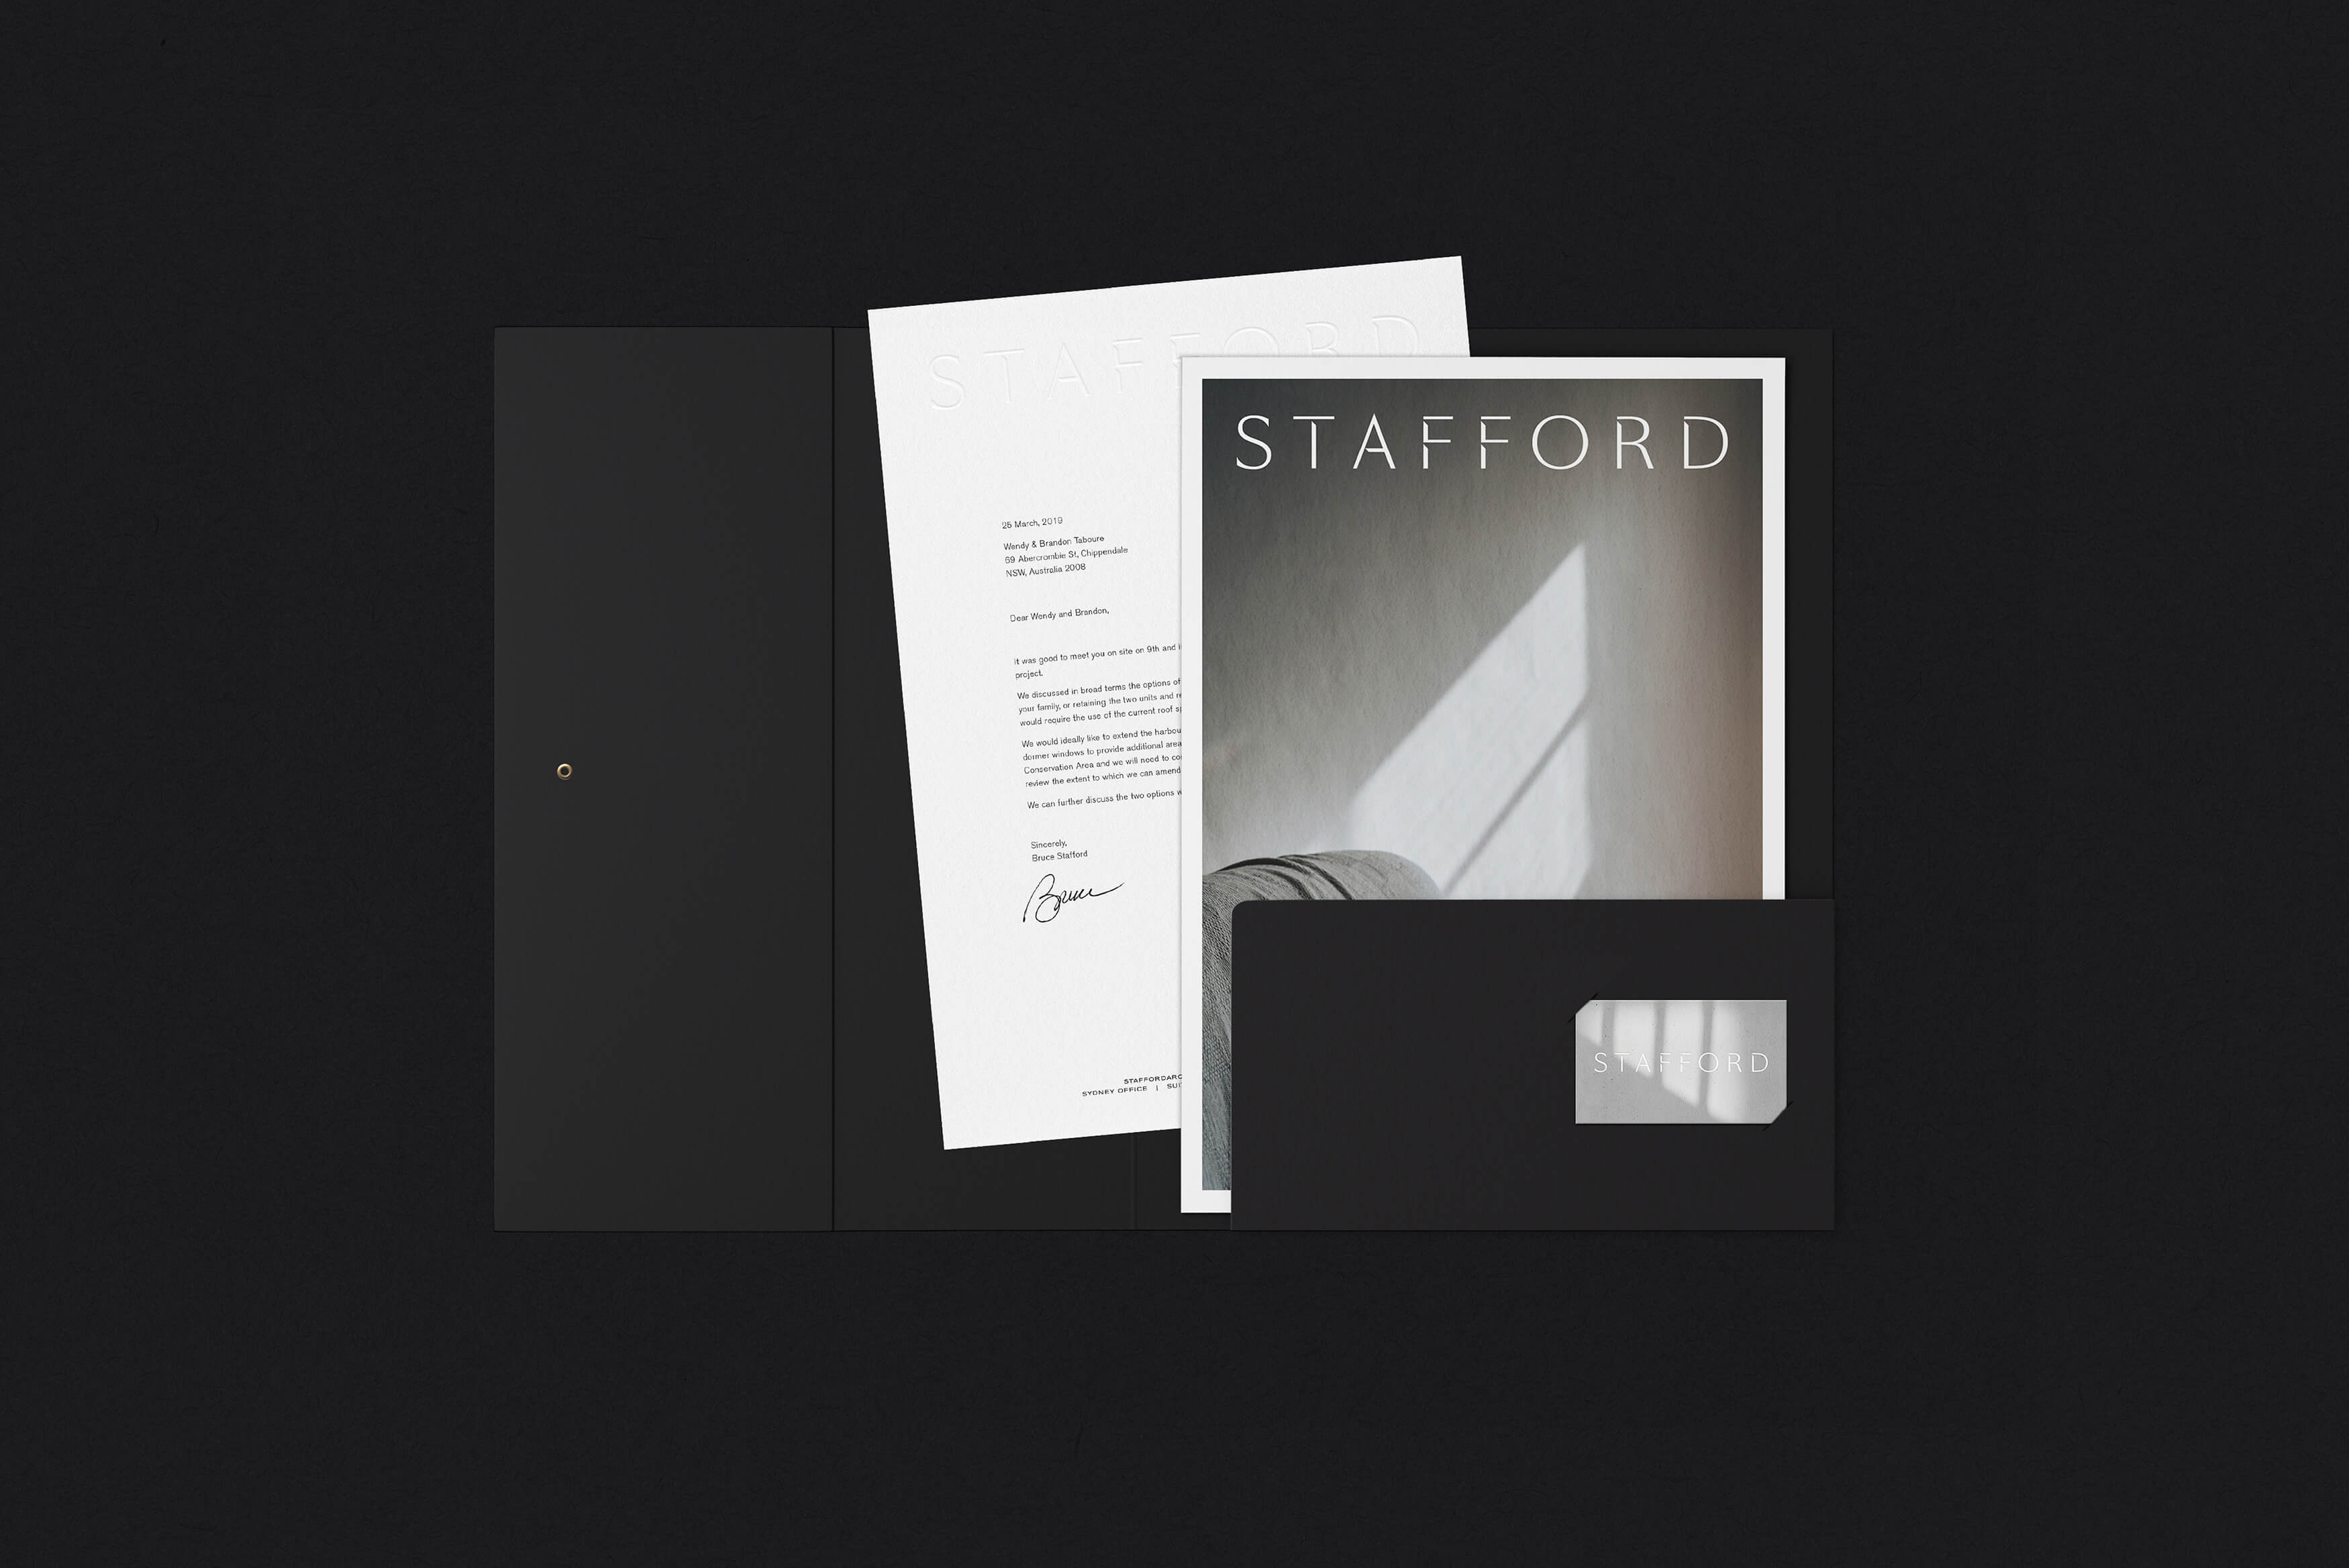 Stafford Architecture - Capabilites Statement folder with business card